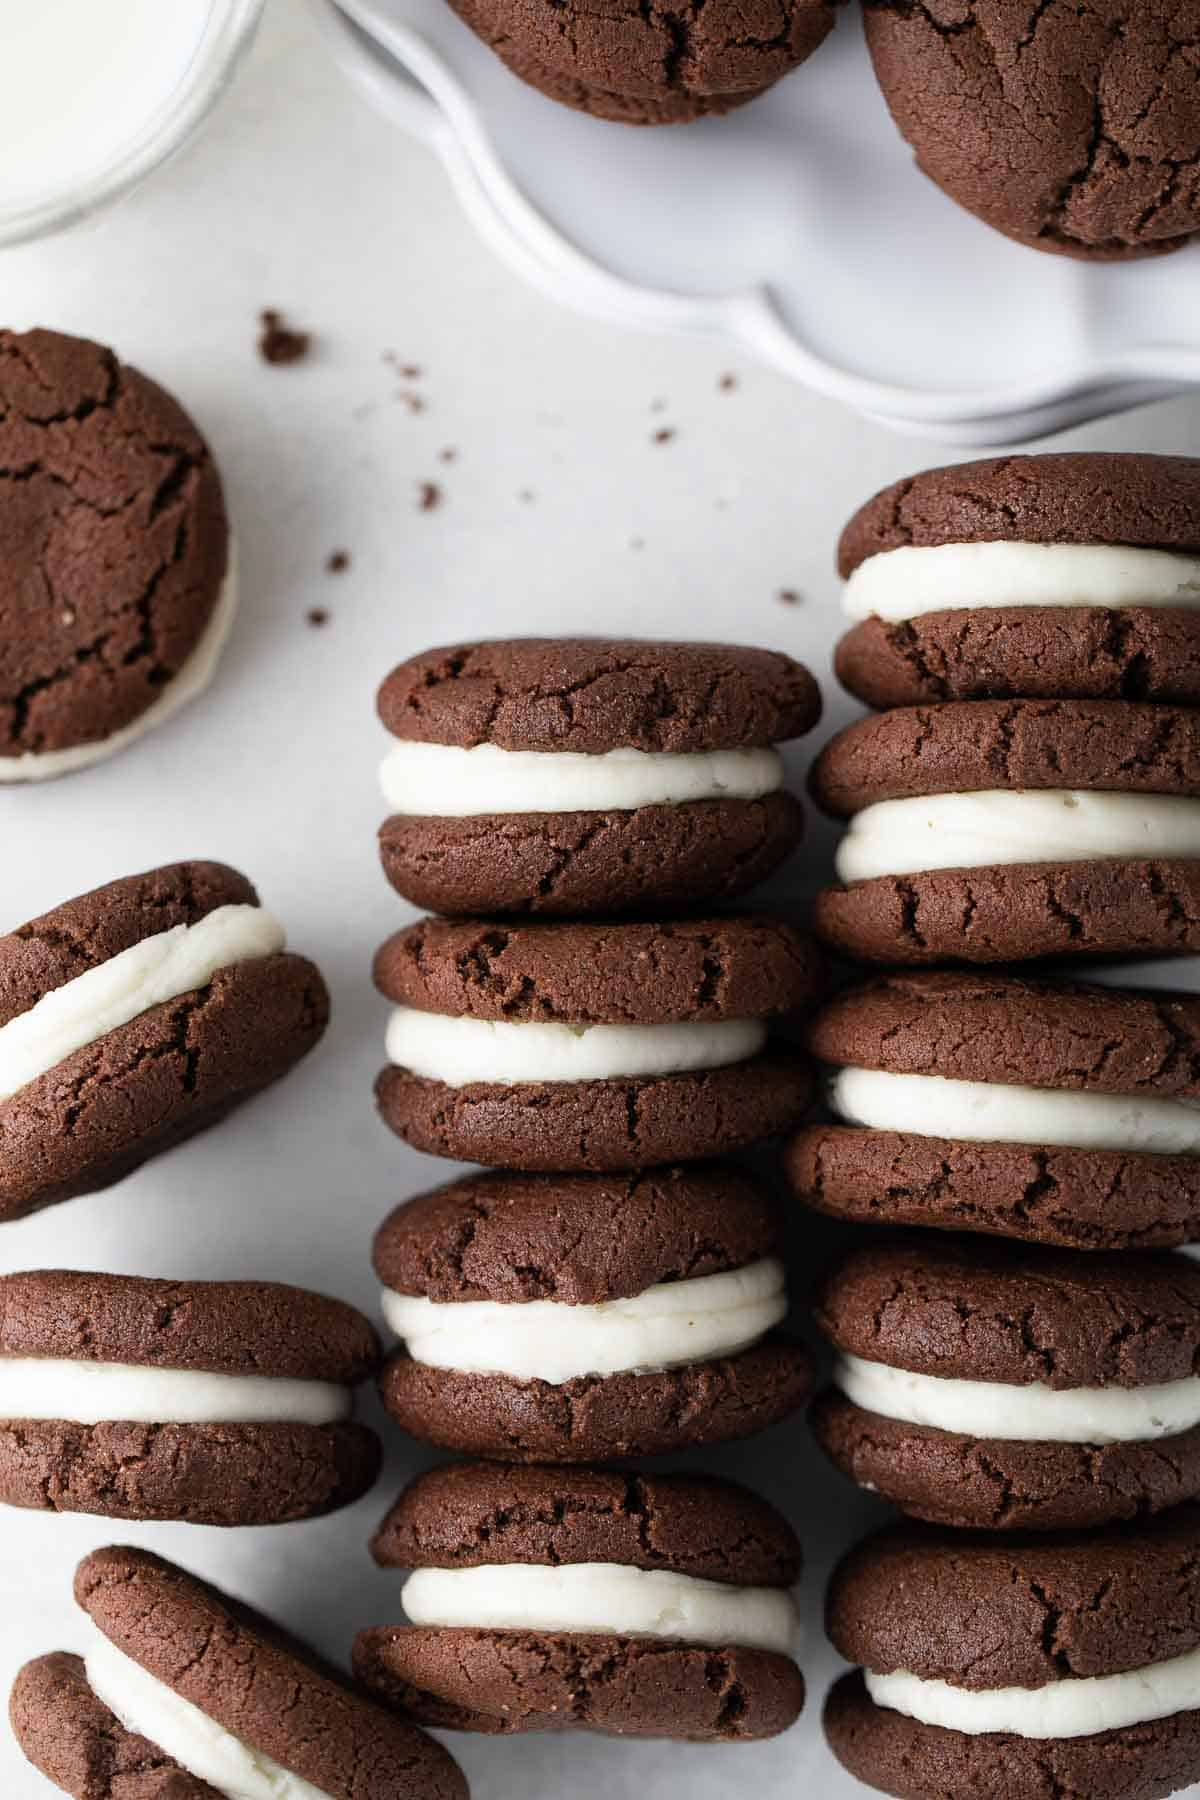 gluten free oreo cookies with cream filling stacked in rows on white background